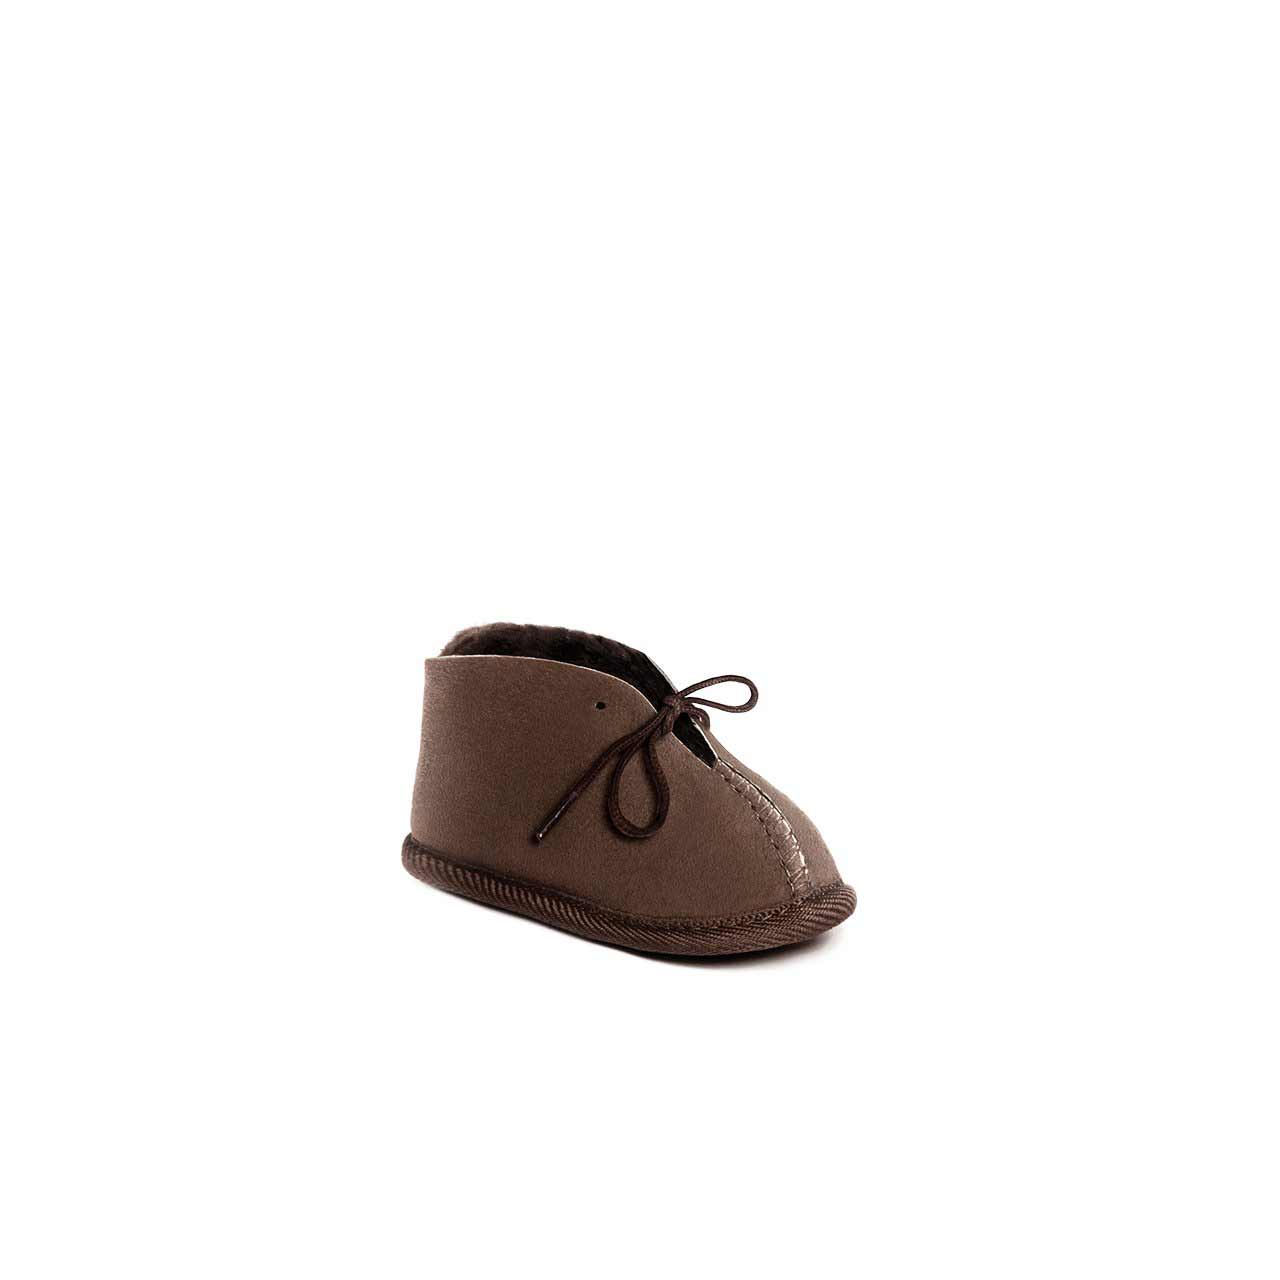 Sheepskin Baby Booties | 100% Australian Made | Ugg Australia®